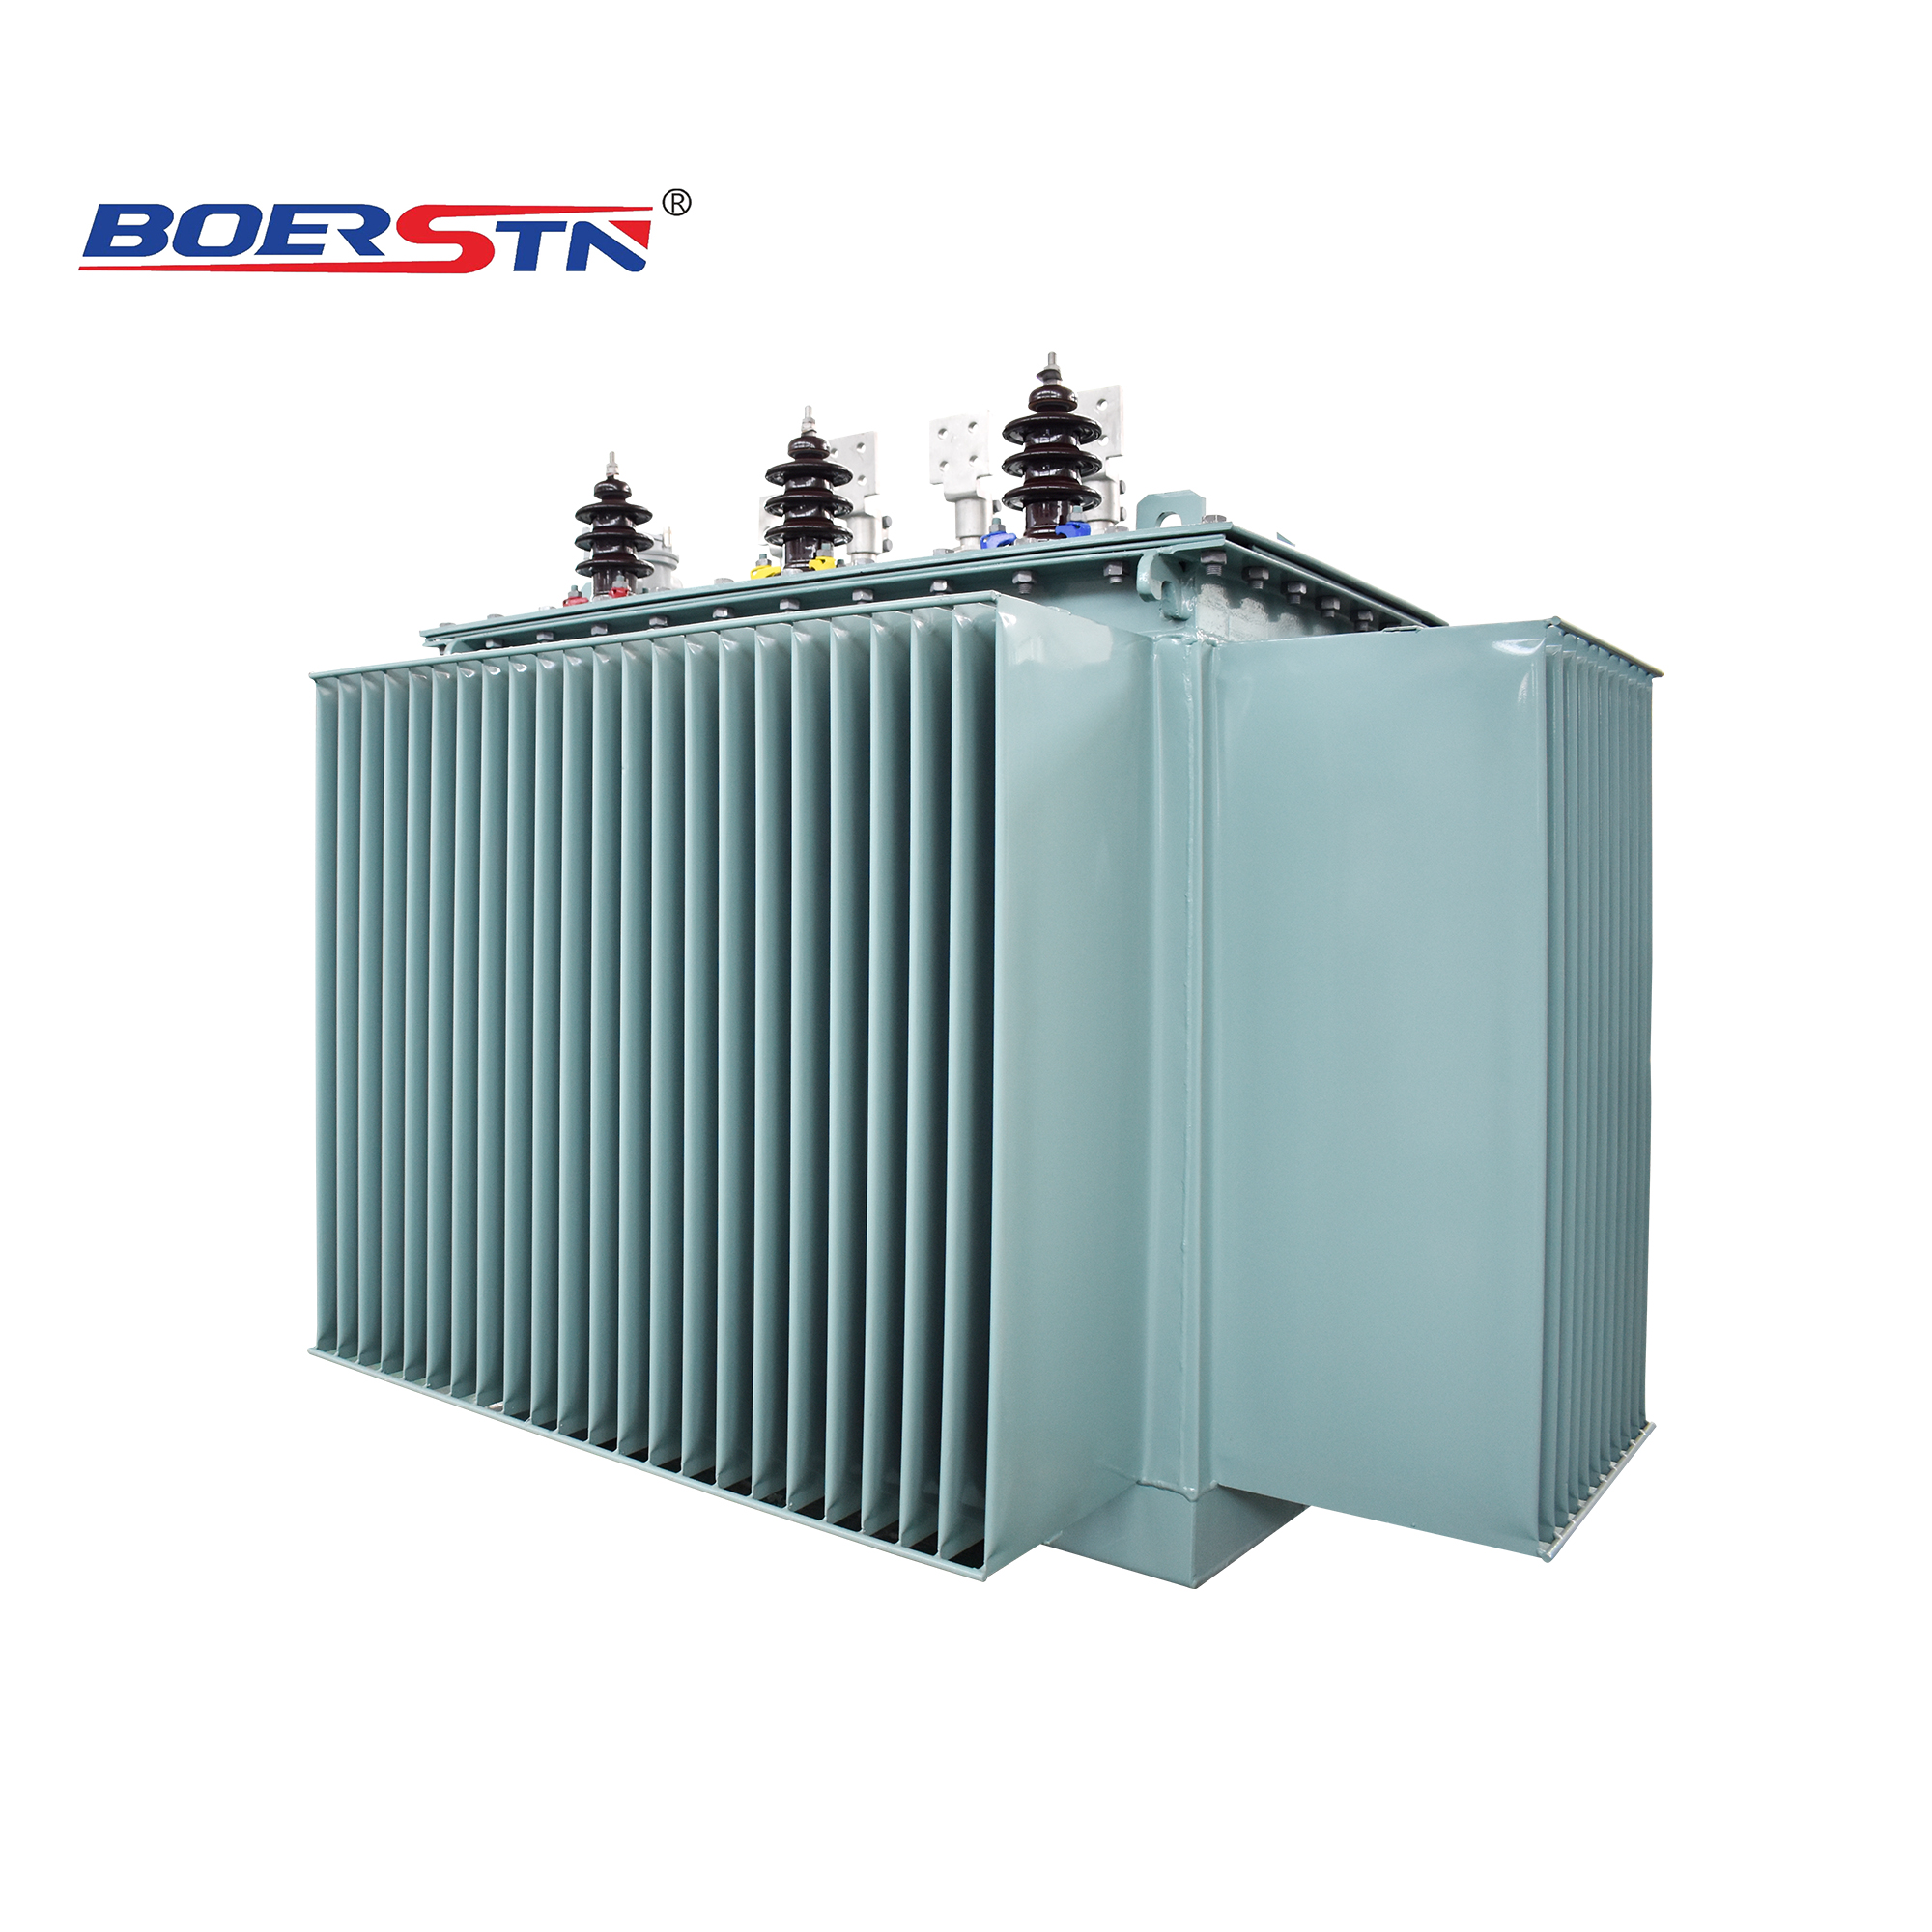 Three Phase 20/0 4KV Self Cooling Oil Immersed Type Power Distribution  Transformer HV 20KV Step down 400V, View step down transformer, Boerstn  Product